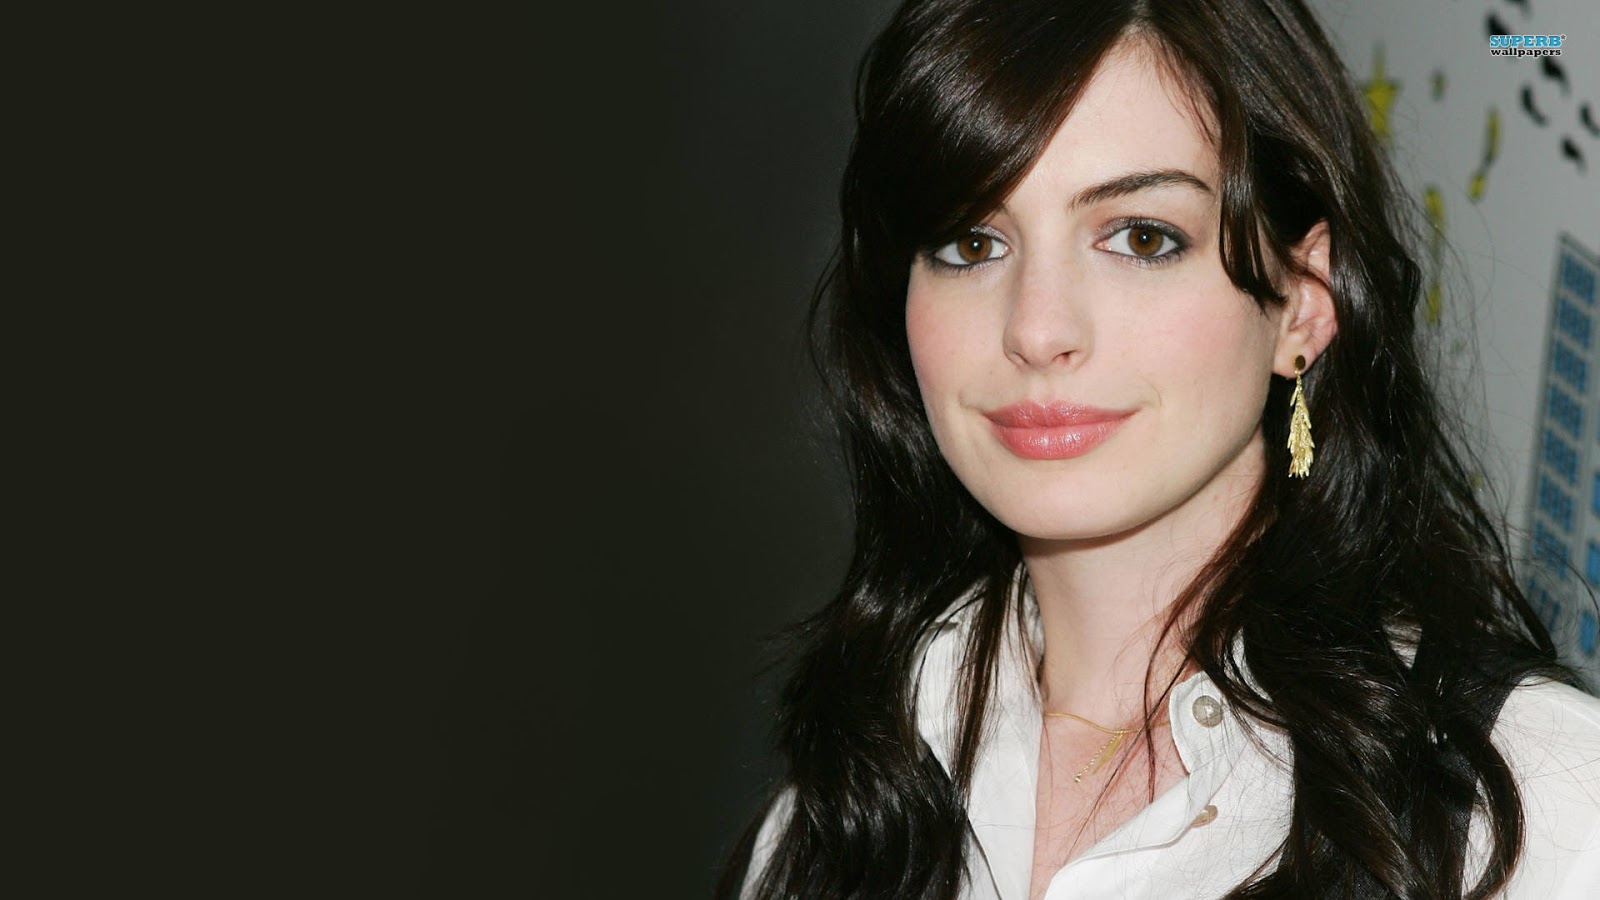 Anne Hathaway Hd Wallpapers | HD Wallpapers